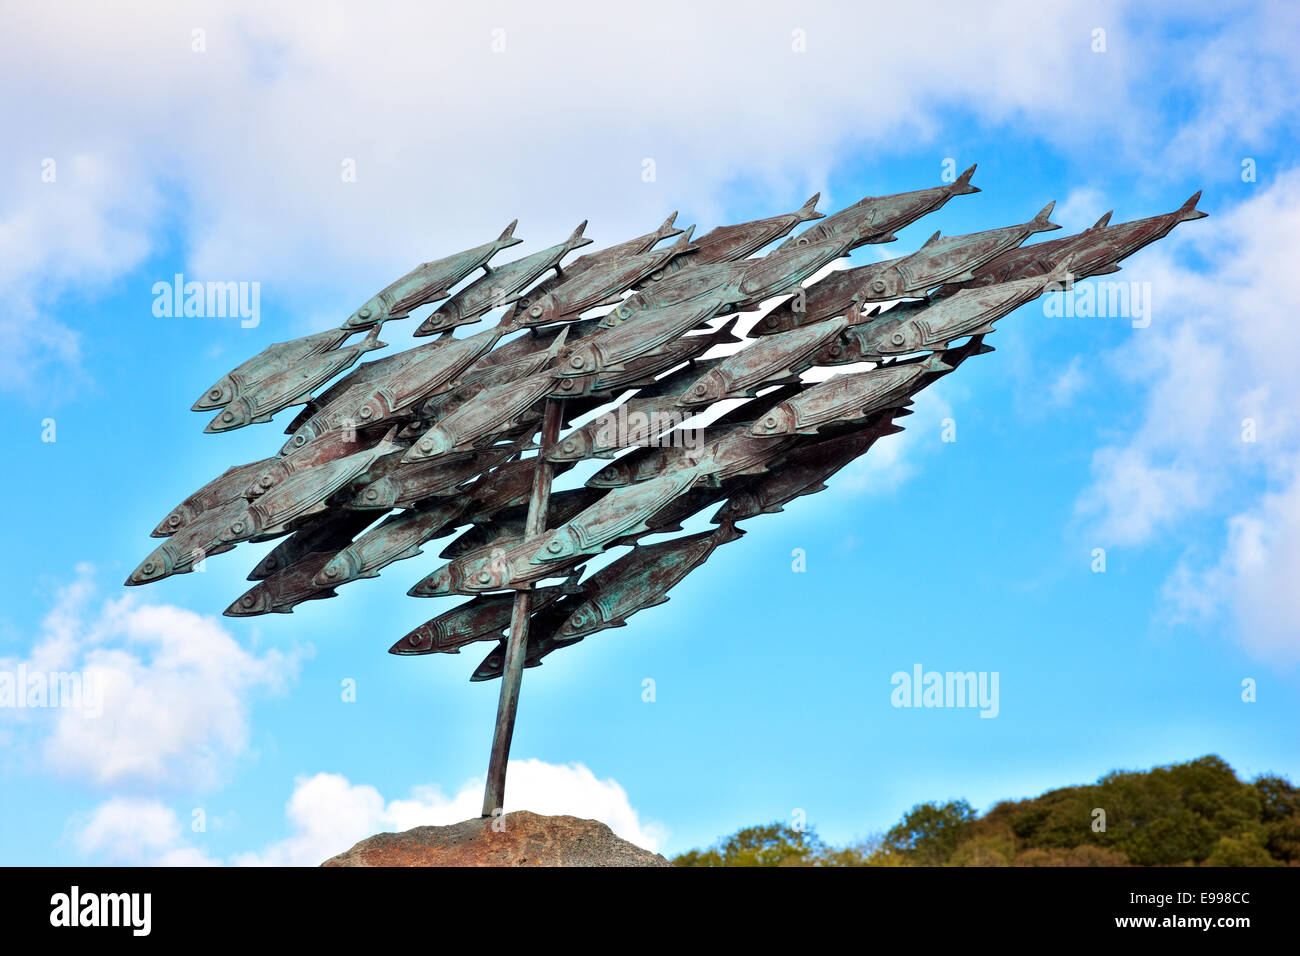 Herring Sculpture by John Cleal at the entrance to the harbour, Lower Fishguard, Pembrokeshire, Wales UK - Stock Image